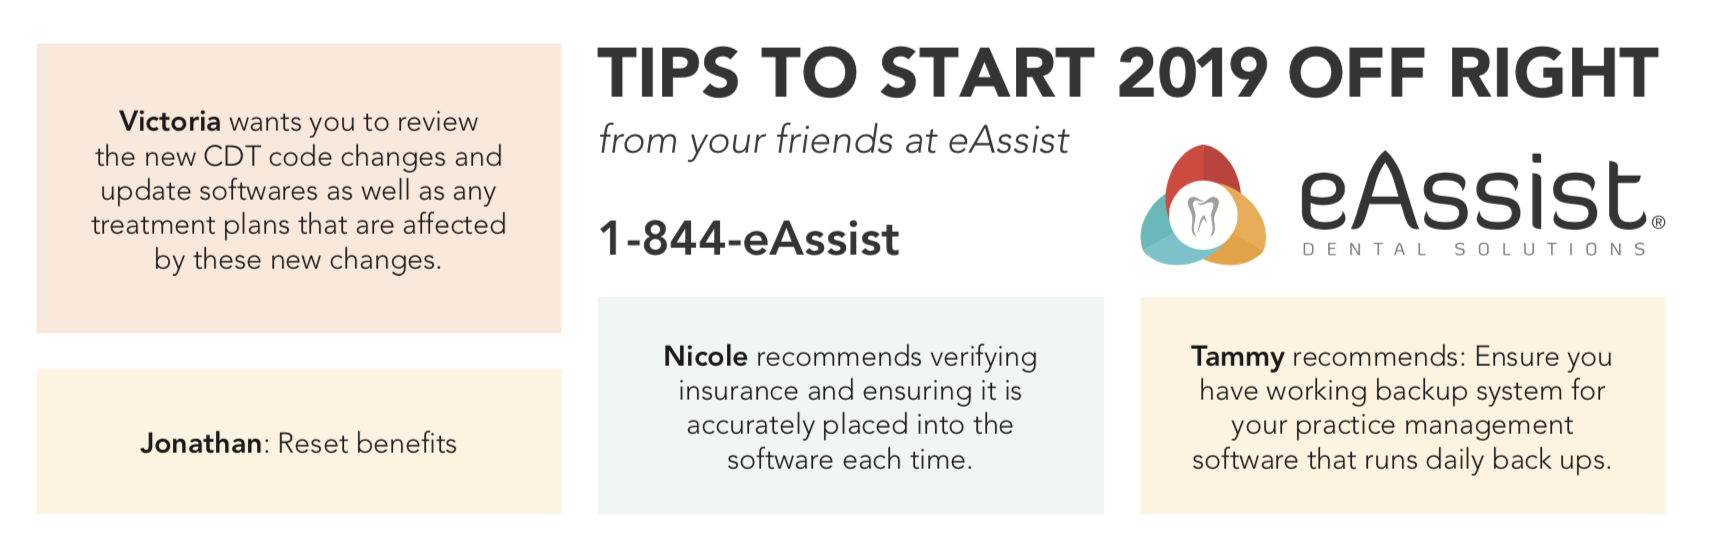 eAssist tips